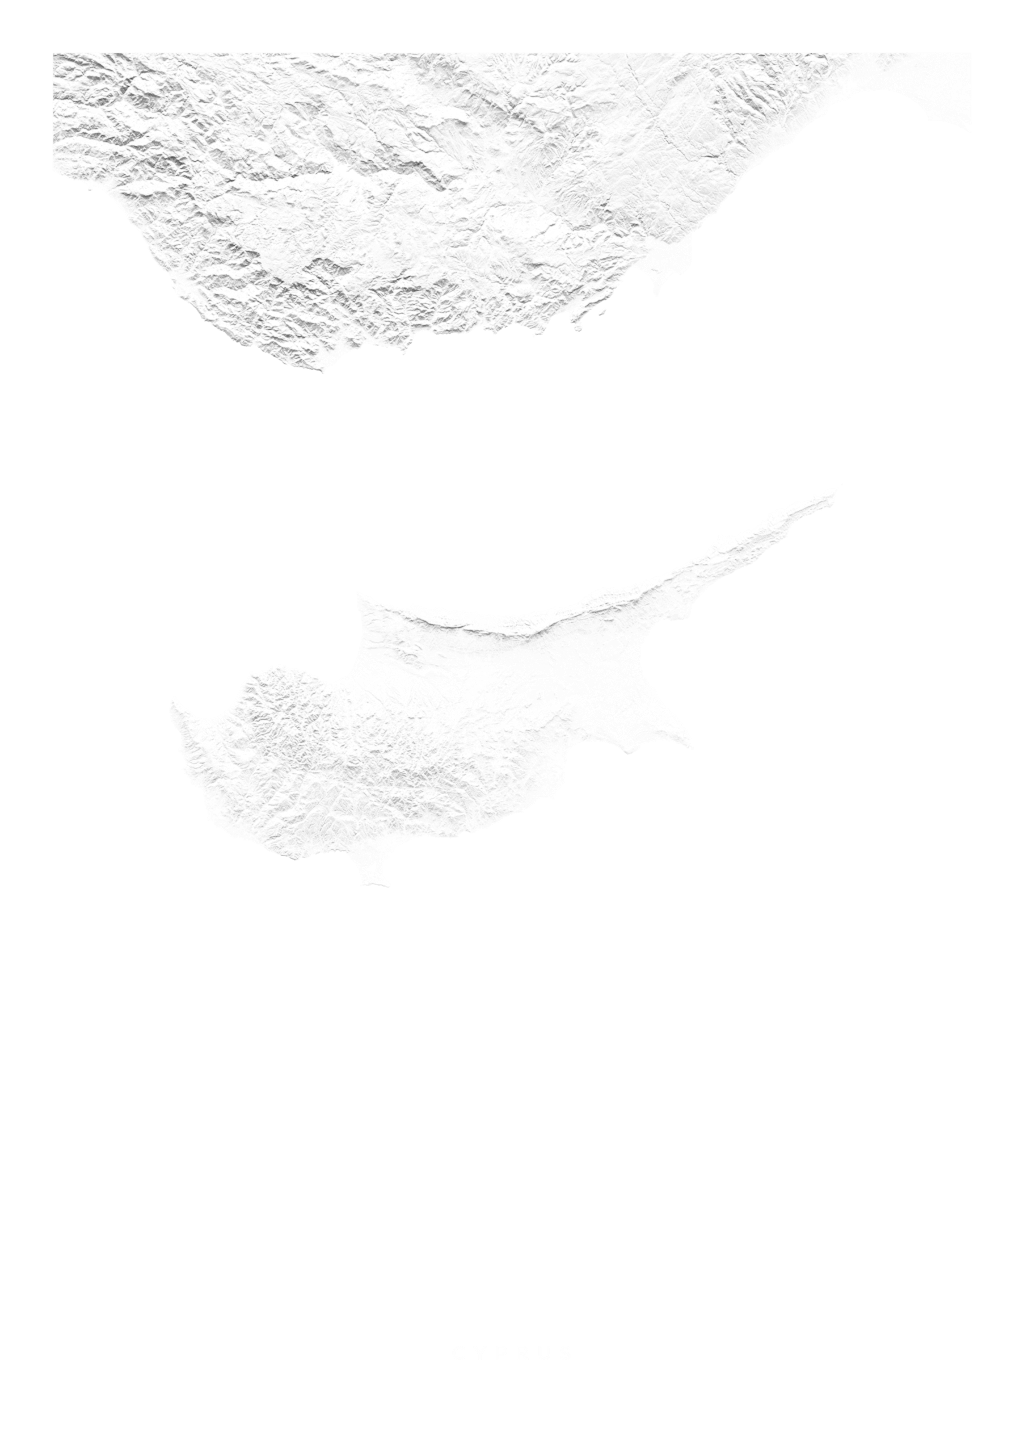 Cyprus wall map